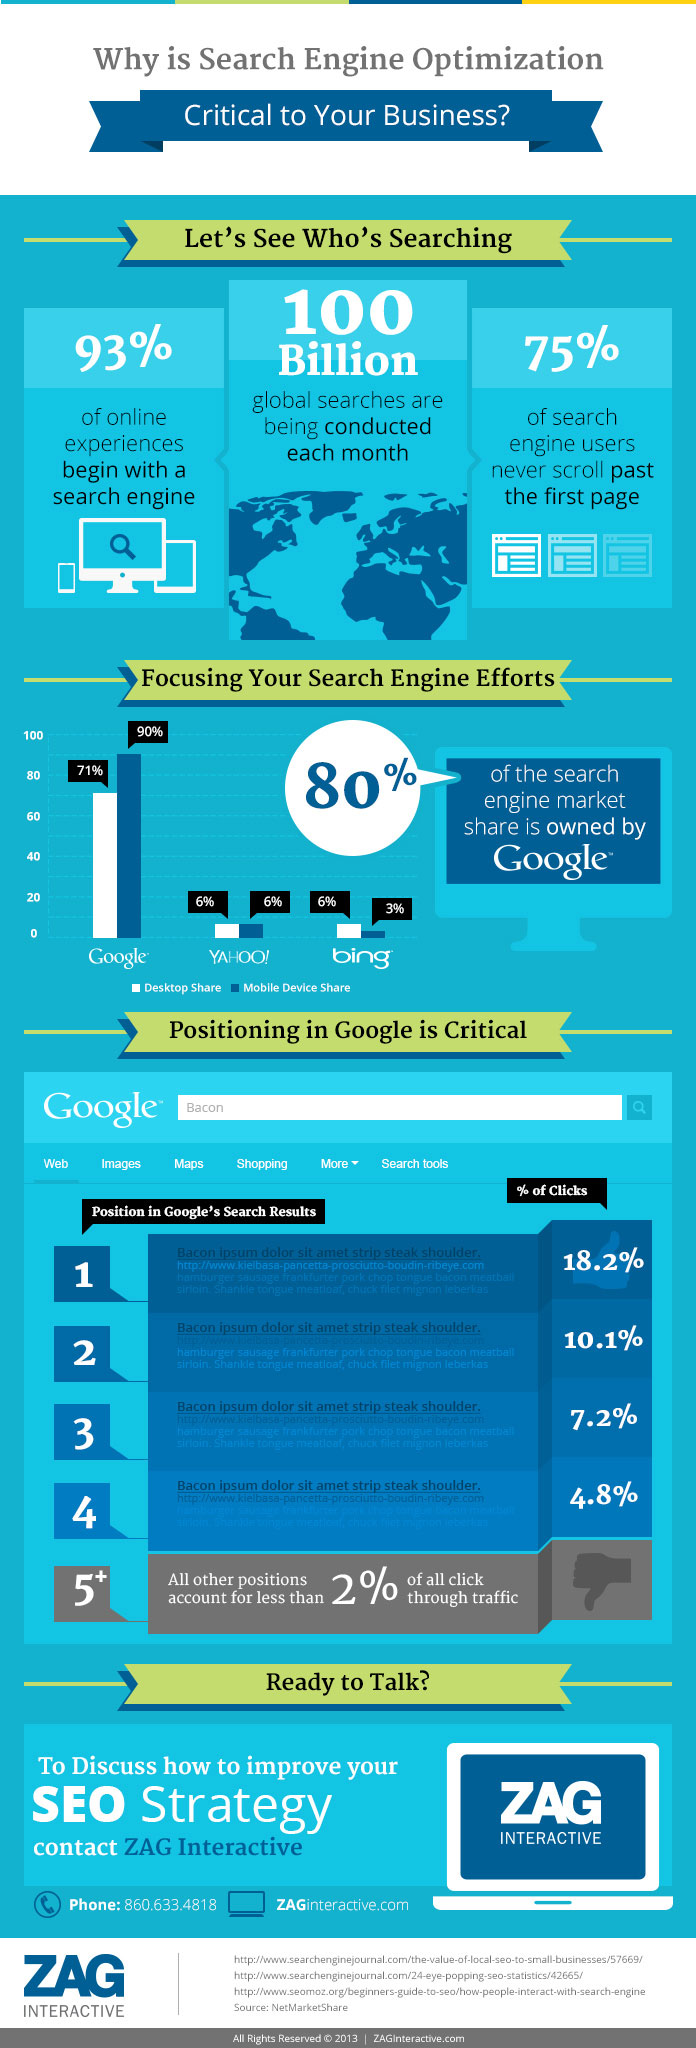 SEO strategy infographic